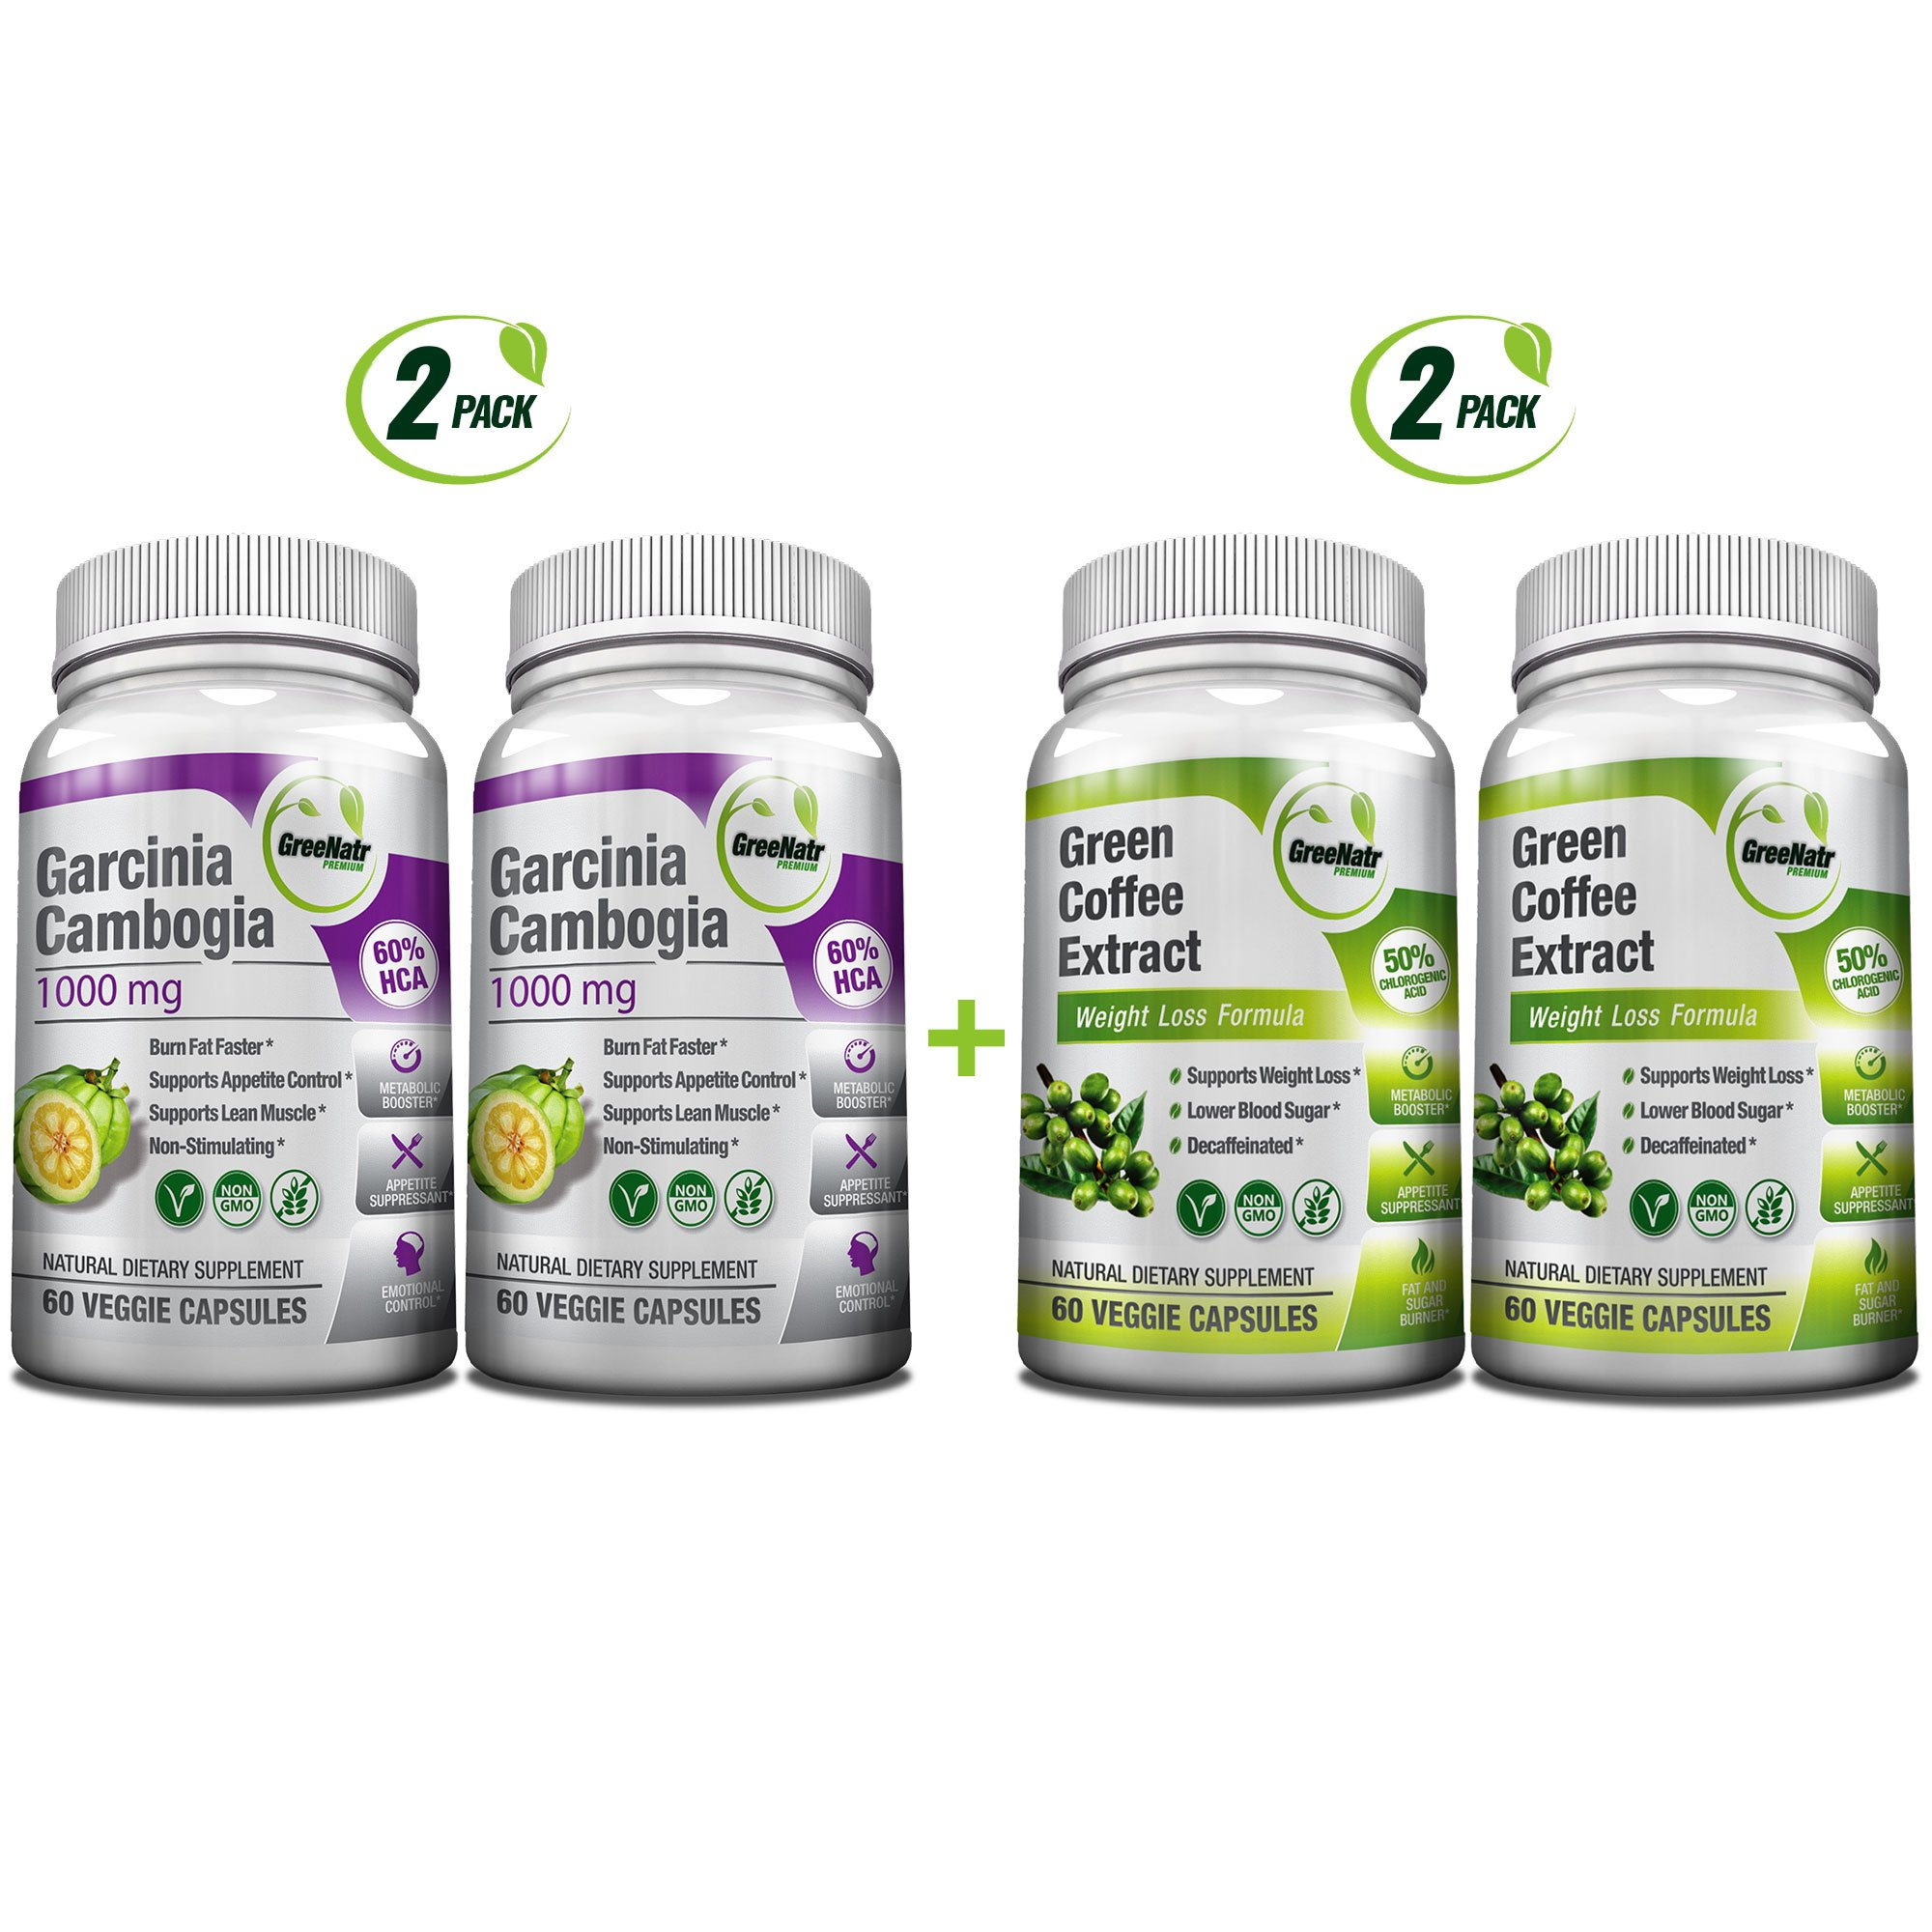 All-in-One Weight Diet Loss Pills & Appetite Suppressant Bundle w/Pure Green Coffee Bean Extract + Garcinia Cambogia Extract | Blocks Fat, Sugar, Carbs - 240 Veggie Capsules - Gluten Free & Non GMO by GreeNatr